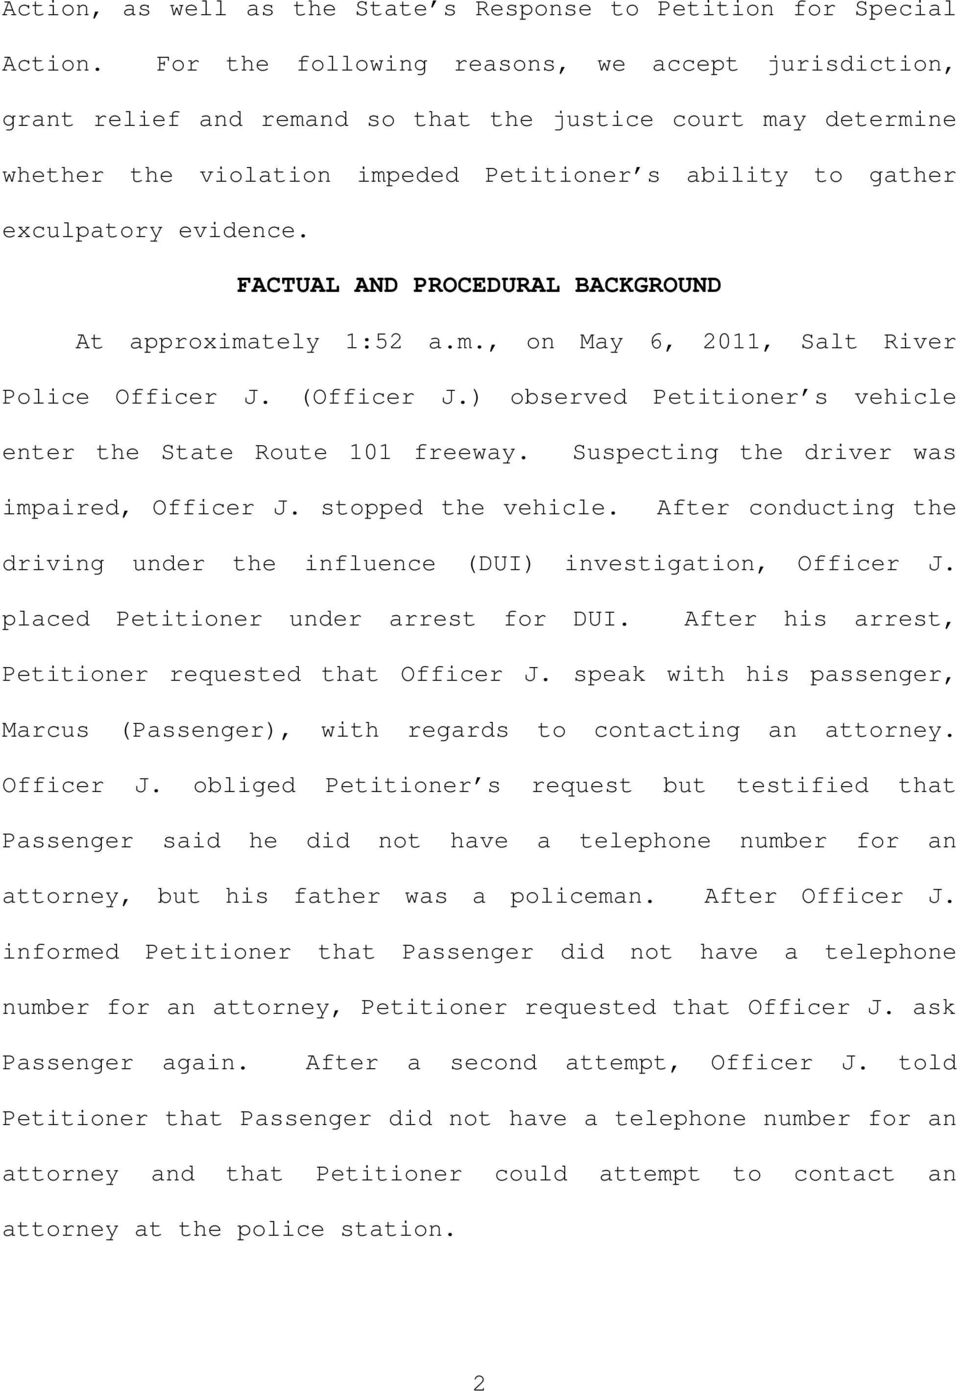 FACTUAL AND PROCEDURAL BACKGROUND At approximately 1:52 a.m., on May 6, 2011, Salt River Police Officer J. (Officer J. observed Petitioner s vehicle enter the State Route 101 freeway.